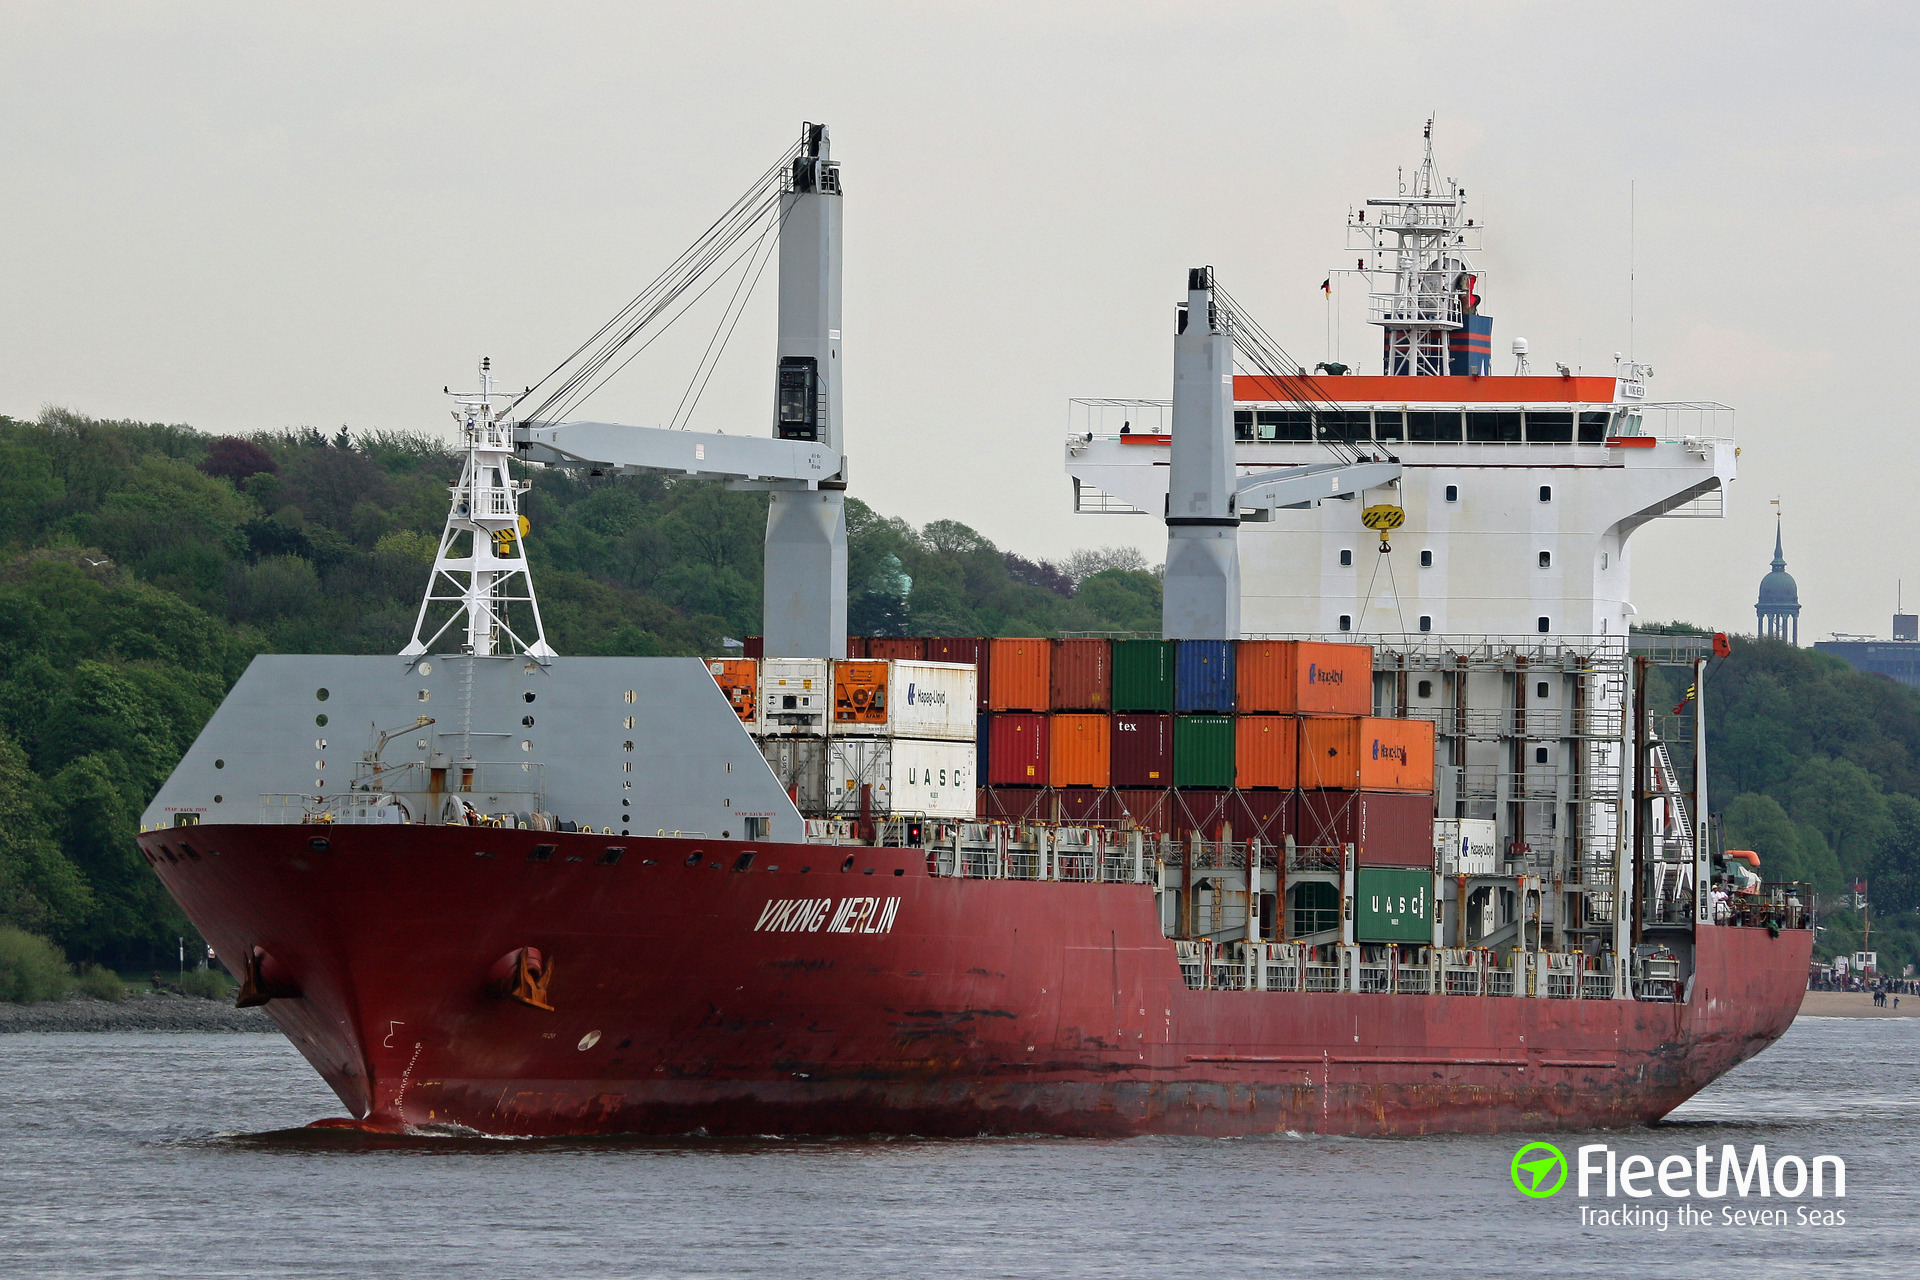 Boxship Viking Merlin suffered fire in engine room, Philadelphia